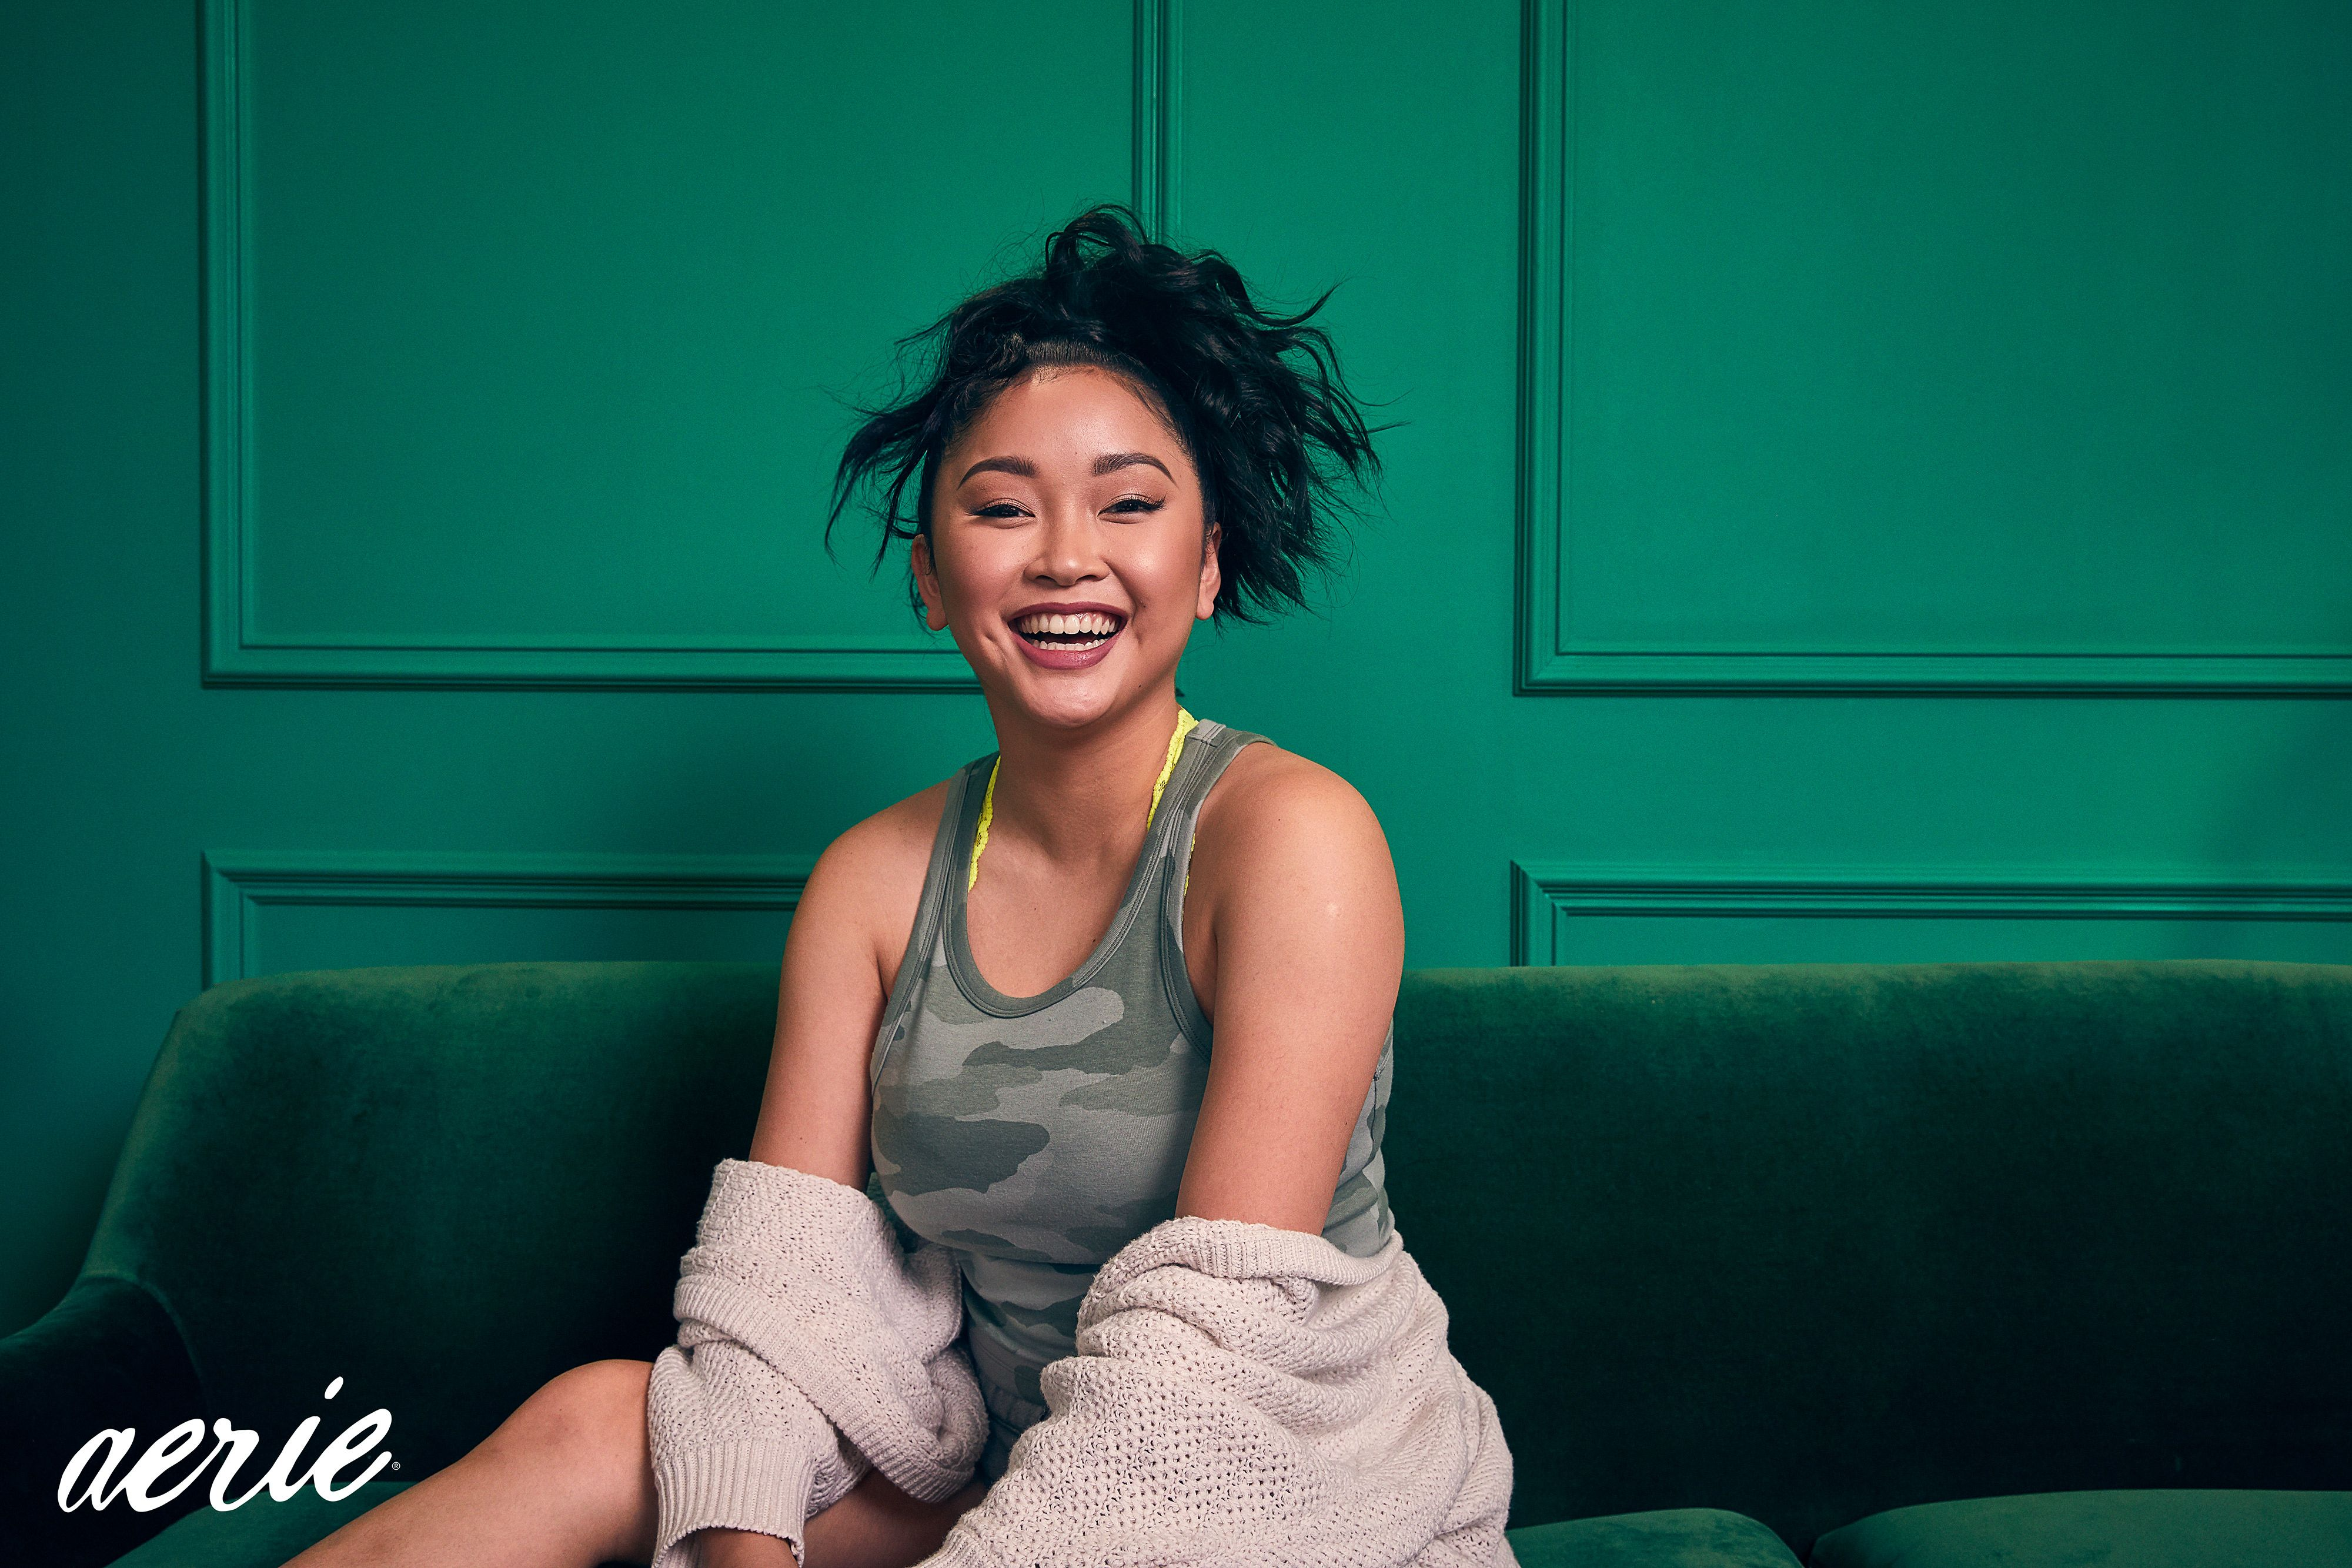 Lana Condor The Newest Aeriereal Role Model On Diversity And Authenticity